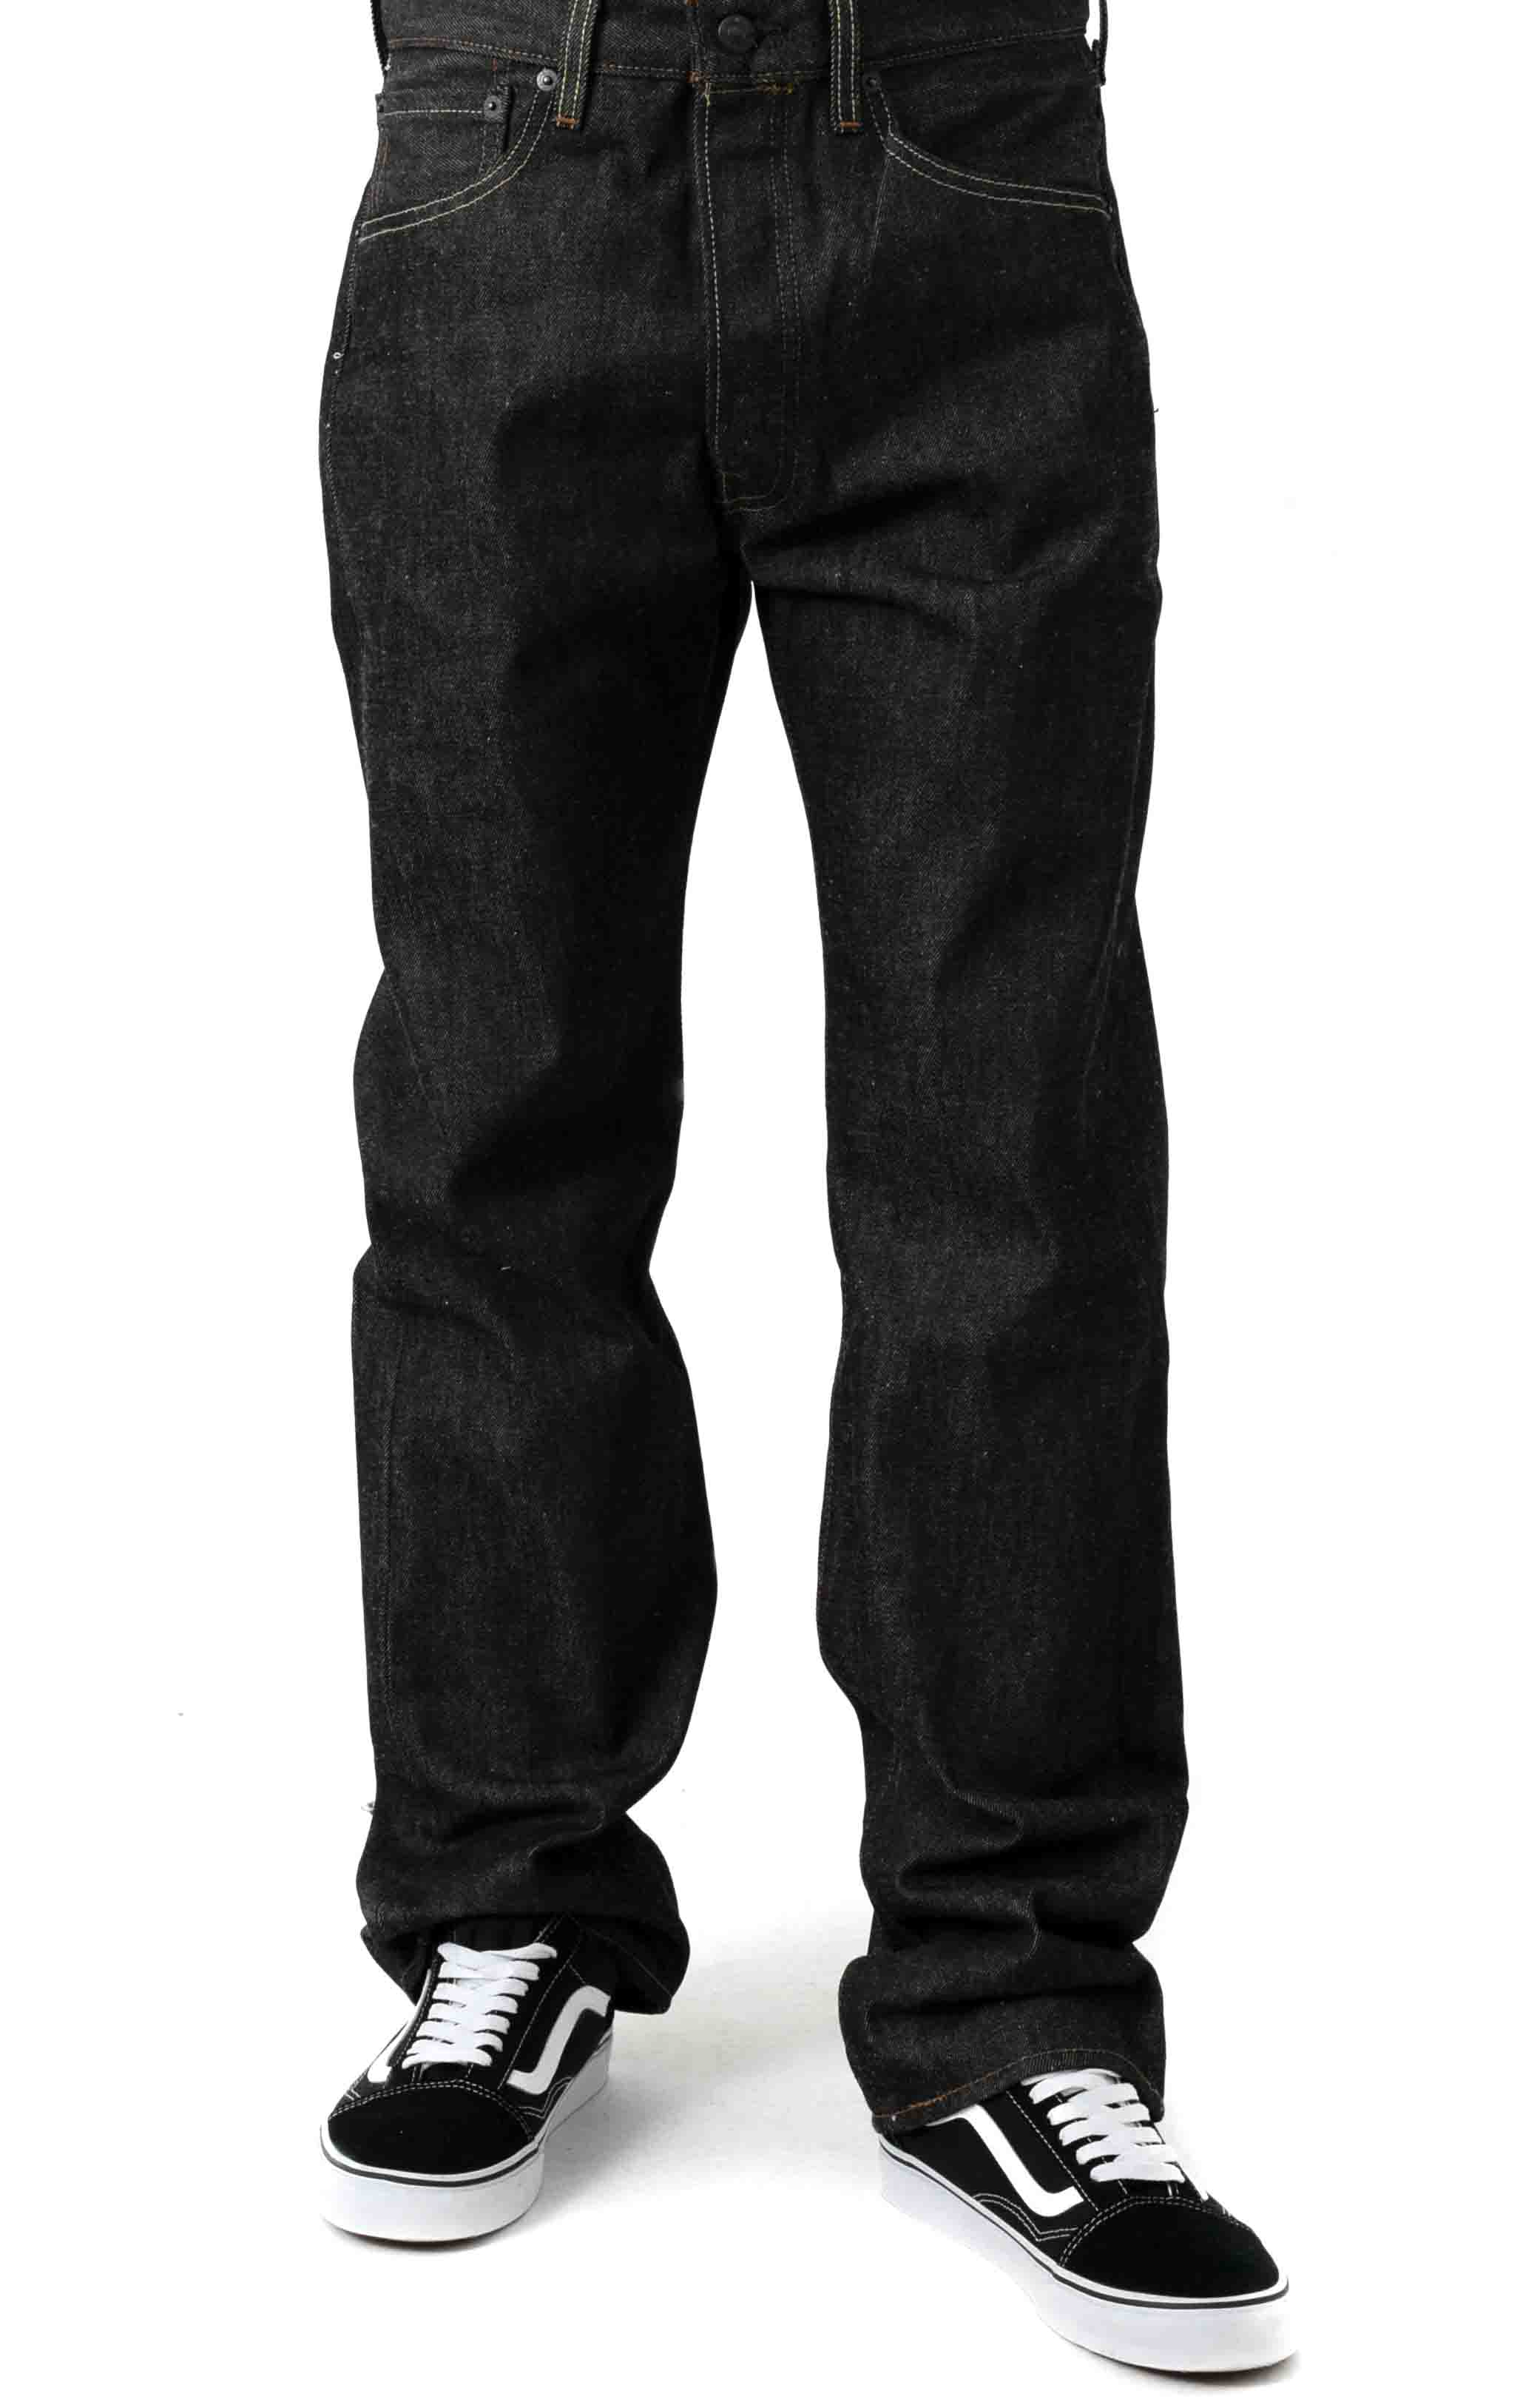 (501-0226) 501 Original Fit Jeans - Black STF  2